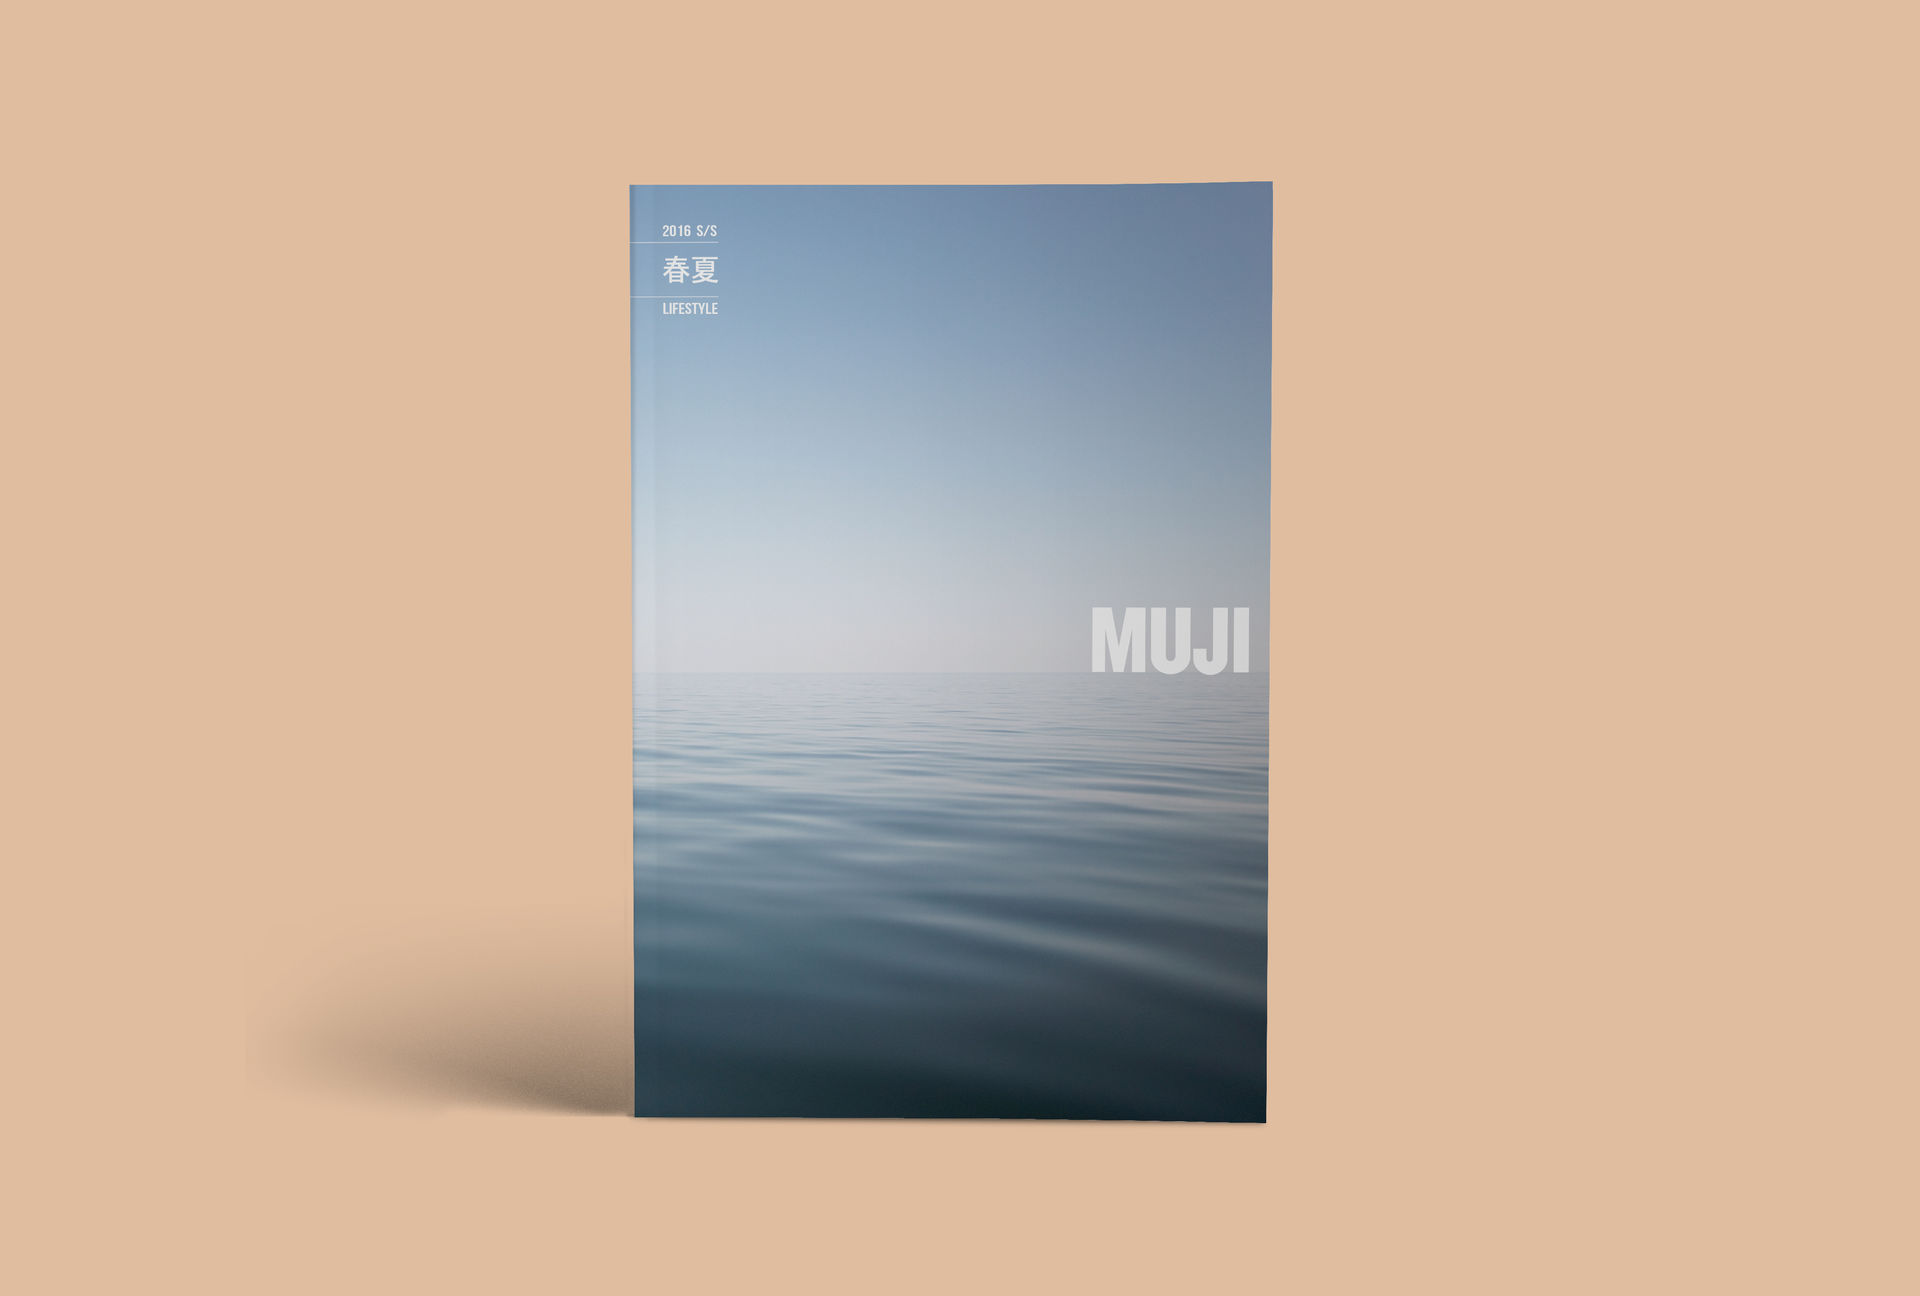 MUJI / PHOTOGRAPHY / GRAPHIC / TYPOGRAPHY